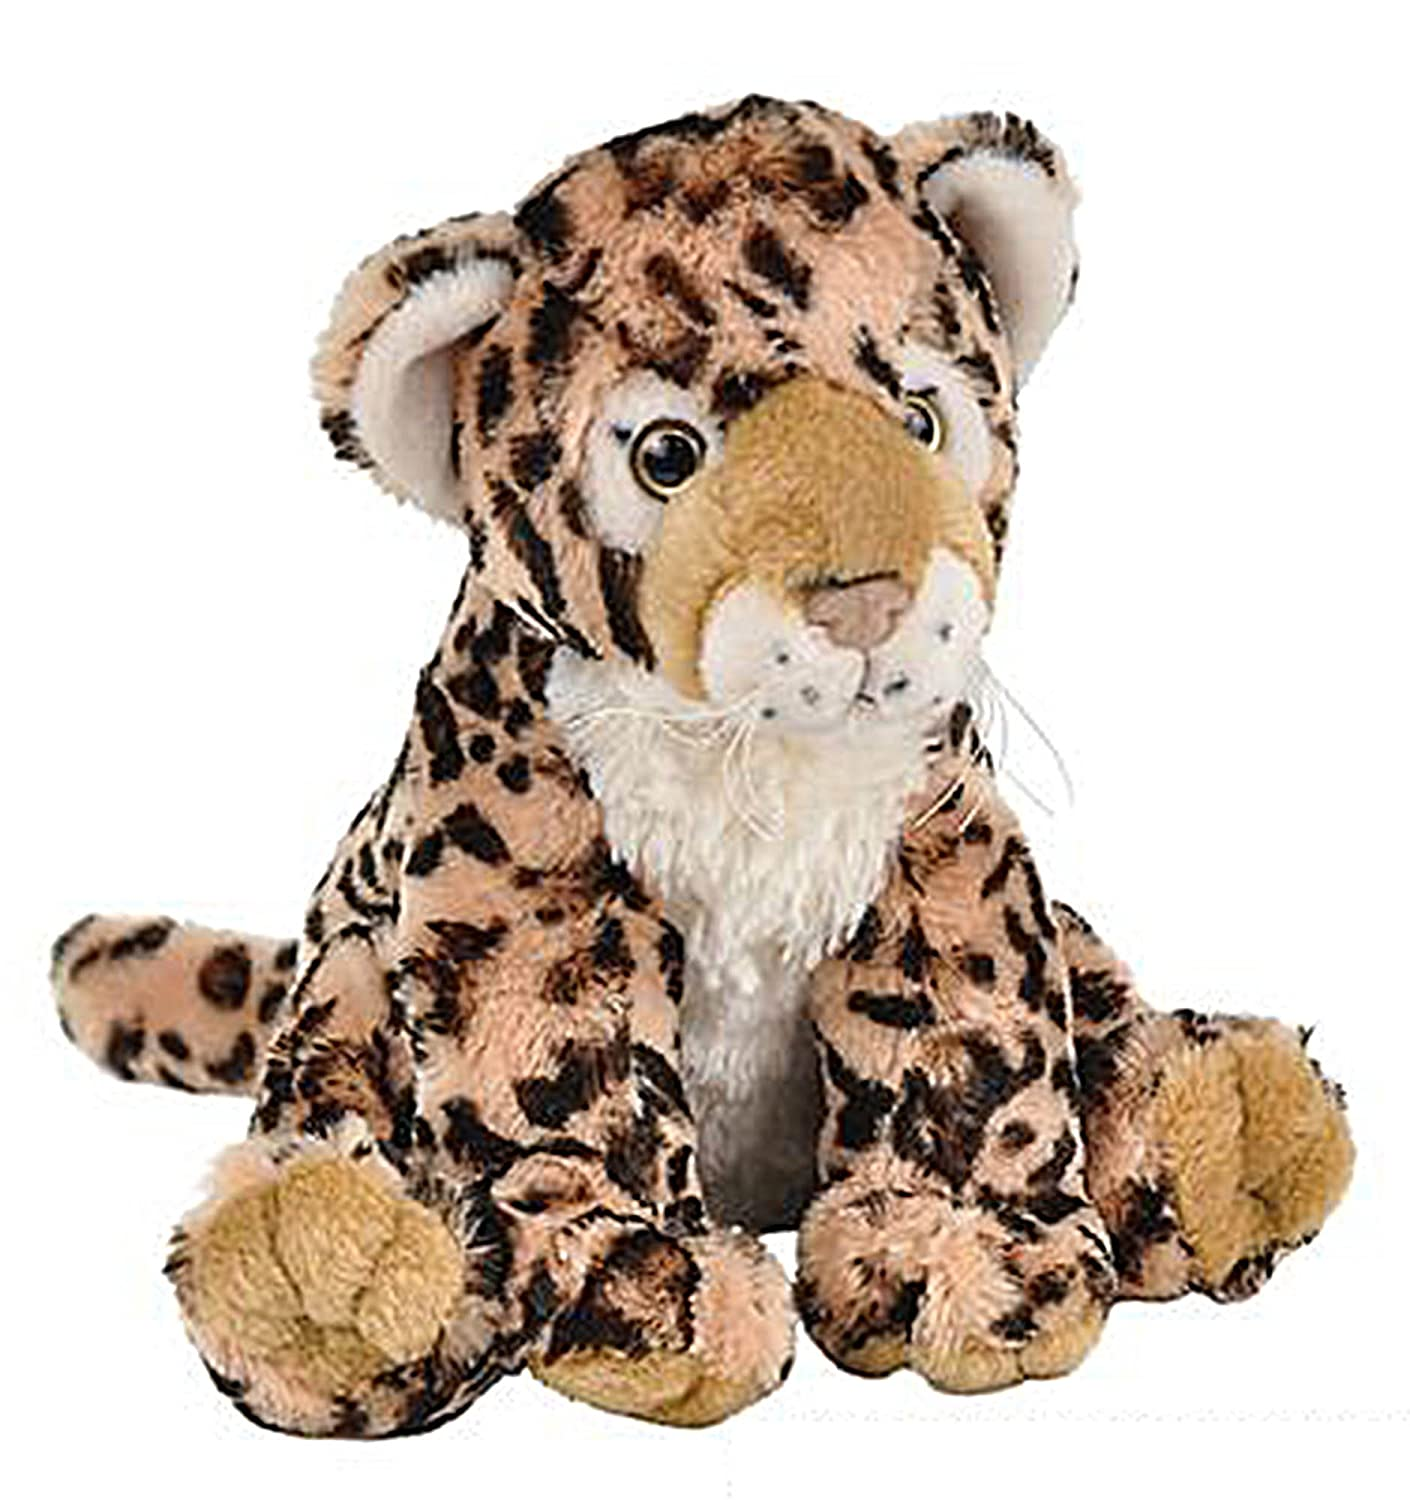 Wildlife Tree 11 Inch Leopard Stuffed Animal Floppy Plush Species Collection Species Collection